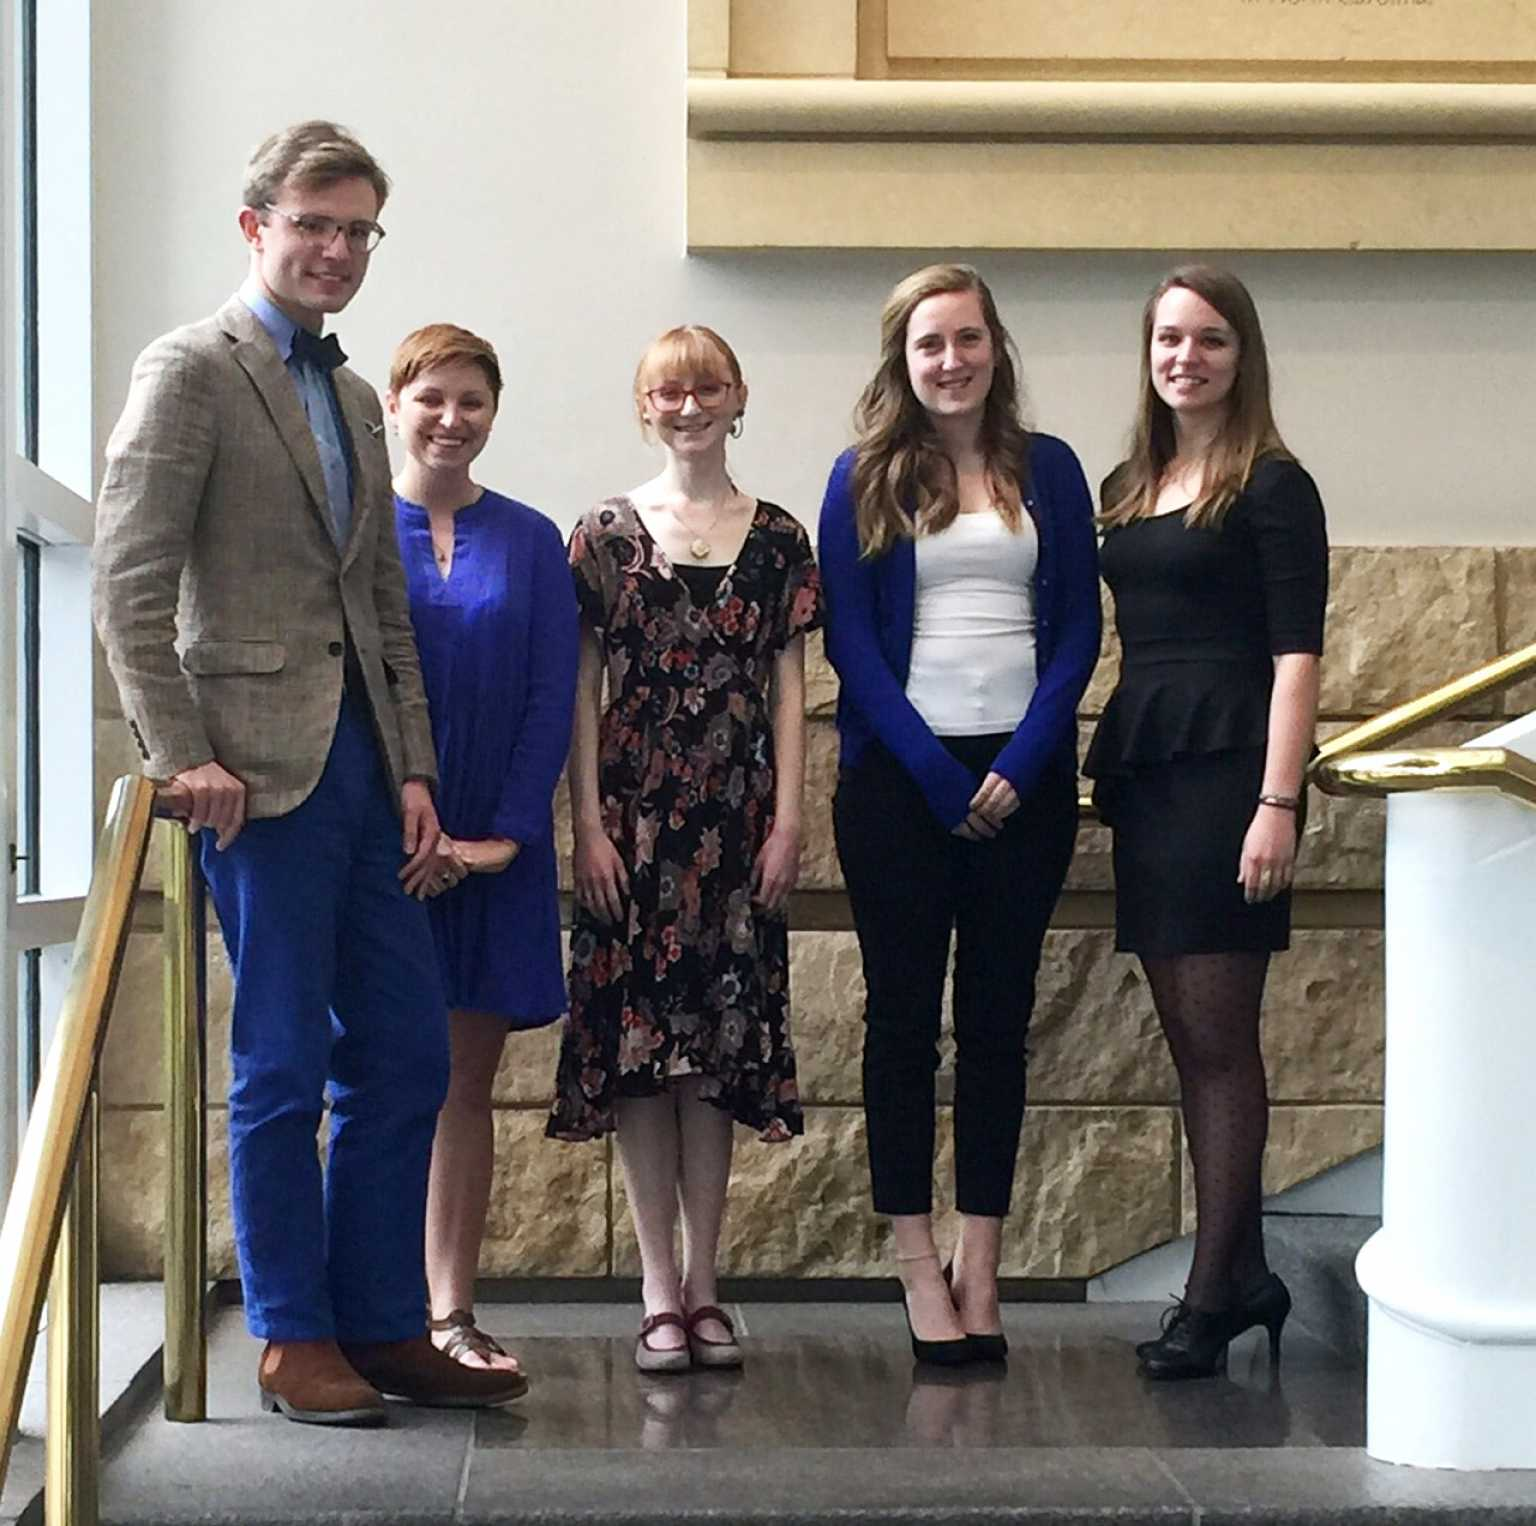 Appalachian State senior Christine Perry (right) and students from other universities throughout the region at the Mint Museum's 27th Annual Regional Collegiate Art History Symposium